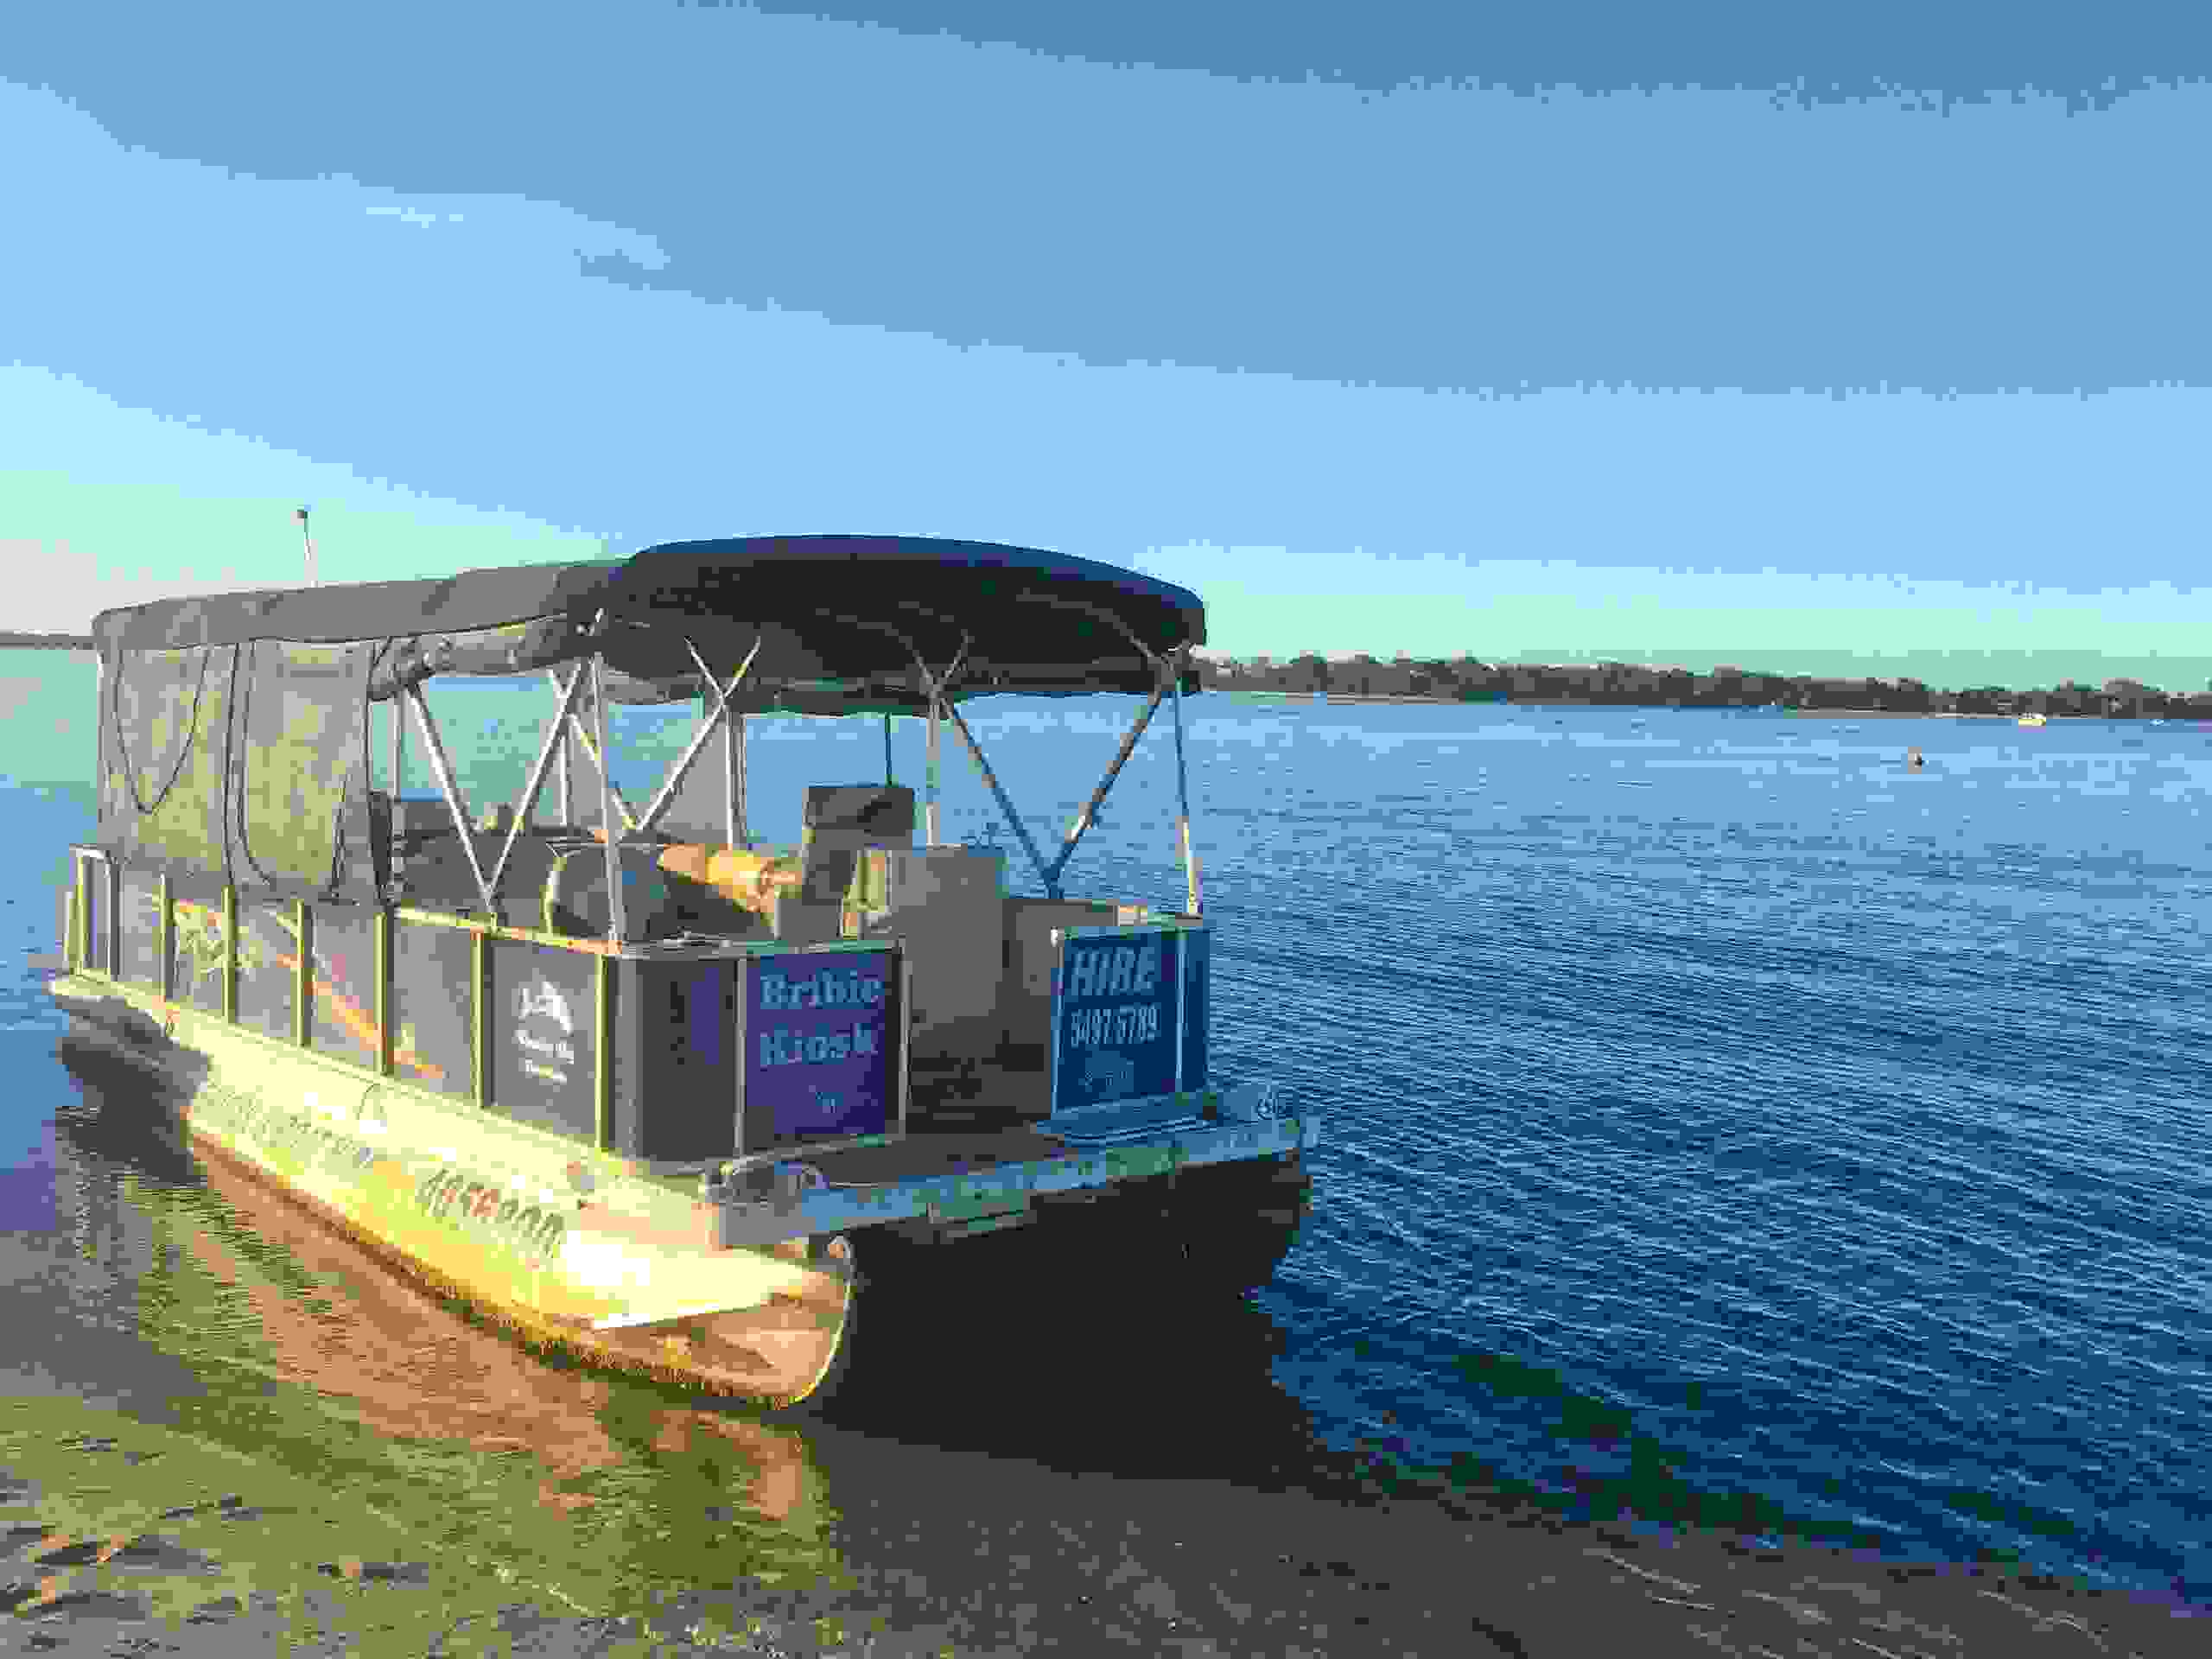 Bribie Beach Shack, Coffee, take away food, boat hire, fishing, bait, tackle, bbq party boat hire,